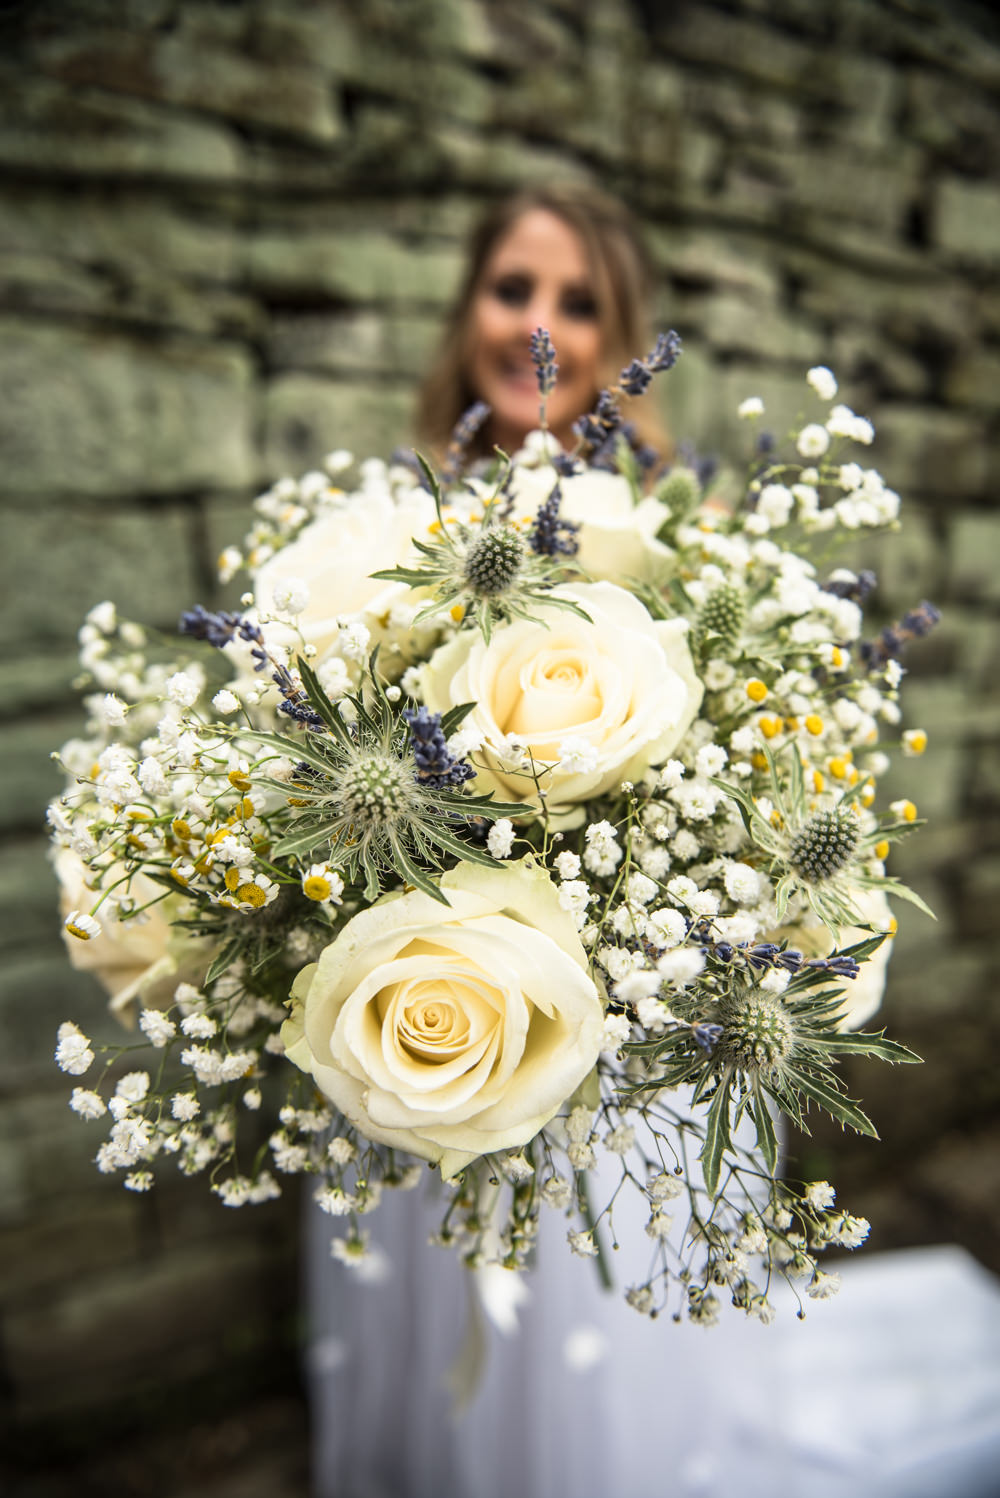 Bouquet Bride Bridal White Rose Gypsophila Lavender Ribbon Flowers Daisy Thistle Crow Hill Wedding Tim Simpson Photography